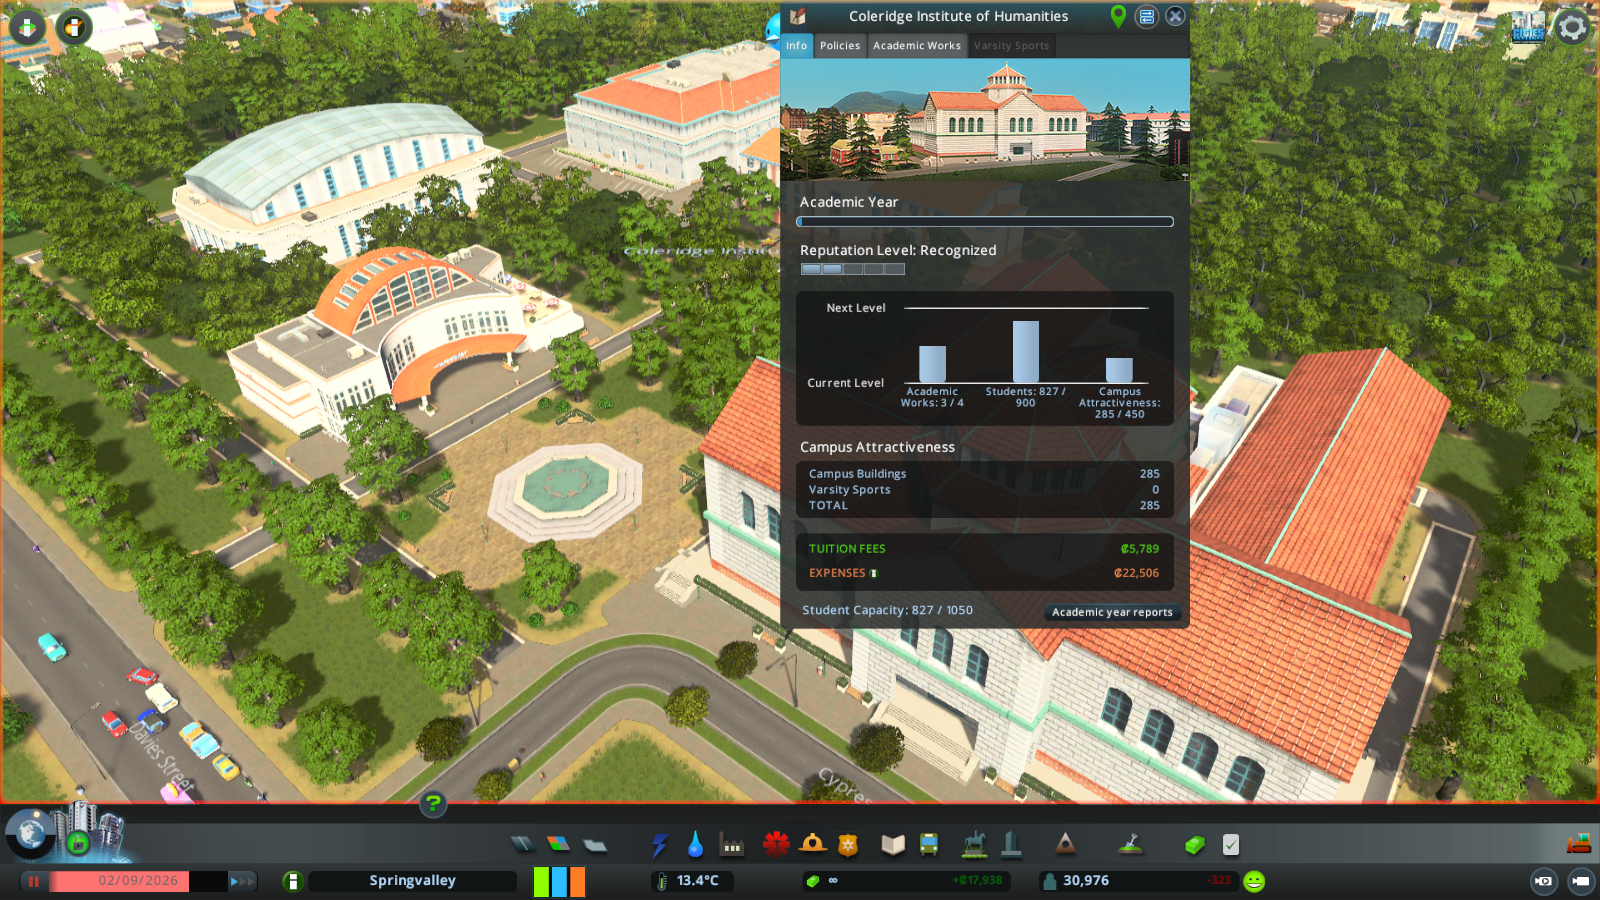 dev_diary_02_reputation_level_campus_info_v3.png